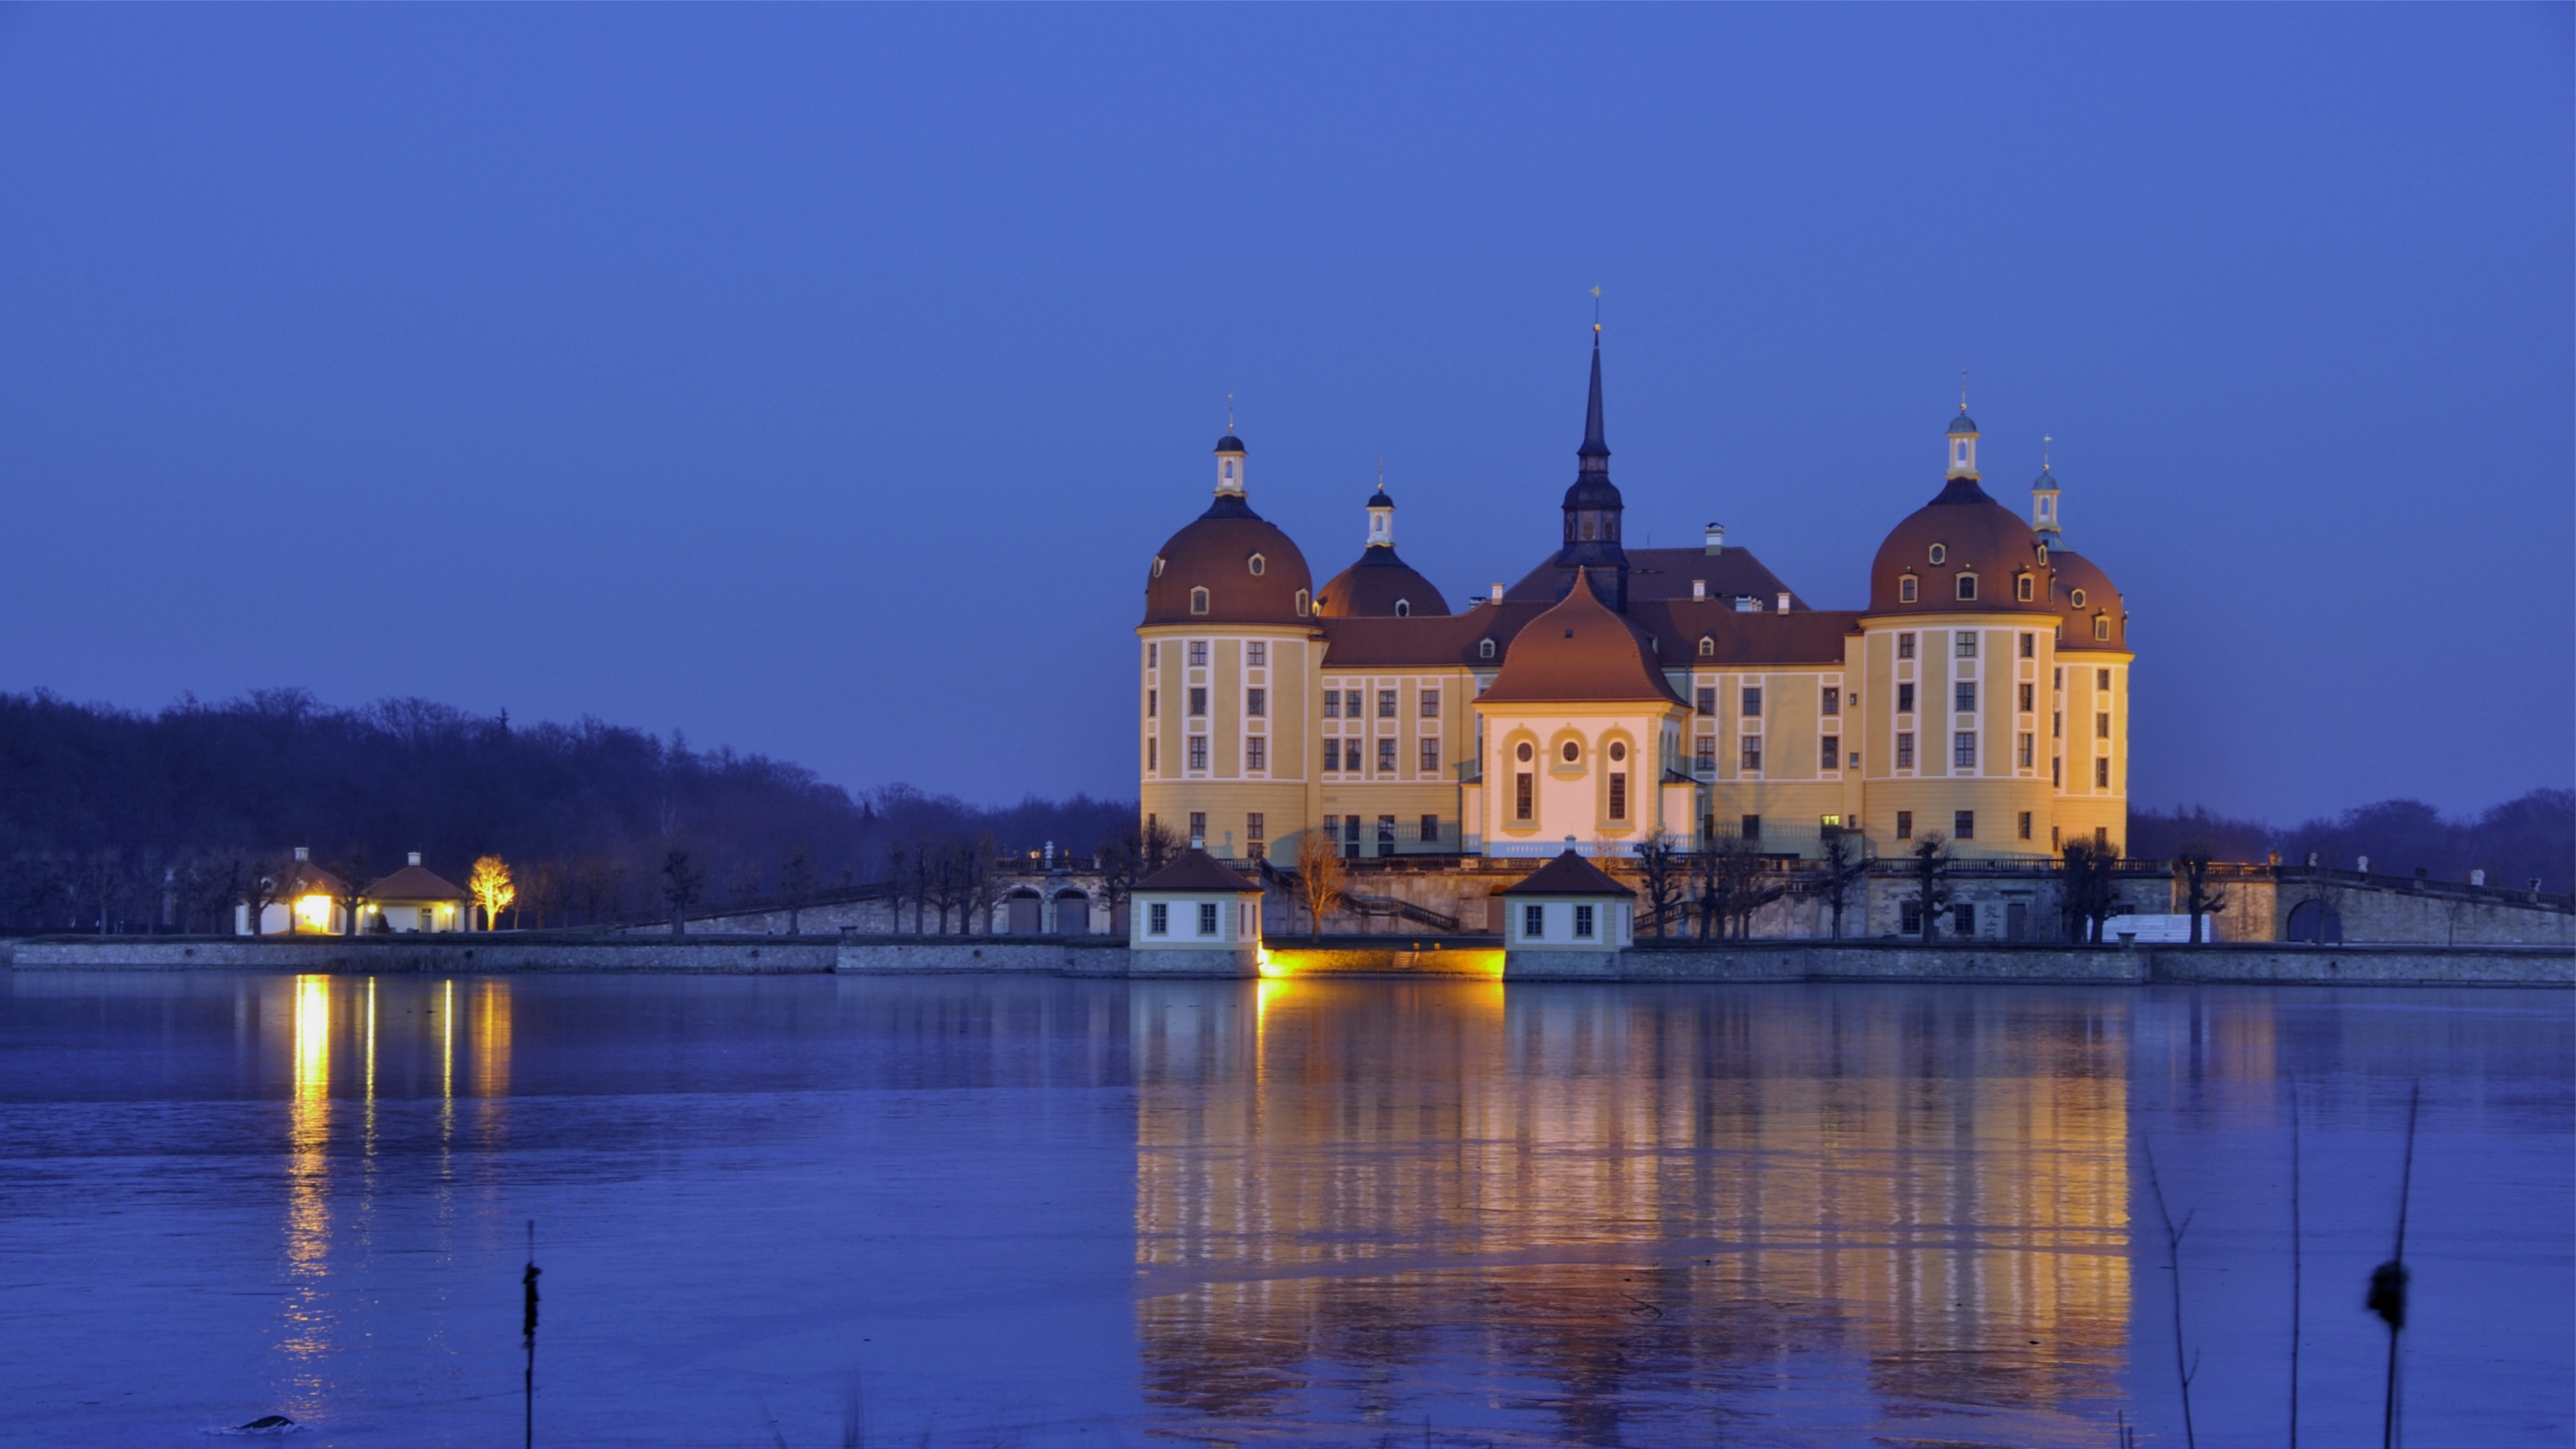 germany saxony moritzburg castle evening lights light water reflection 4k 1538067623 - germany, saxony, moritzburg, castle, evening, lights, light, water, reflection 4k - saxony, Moritzburg, Germany